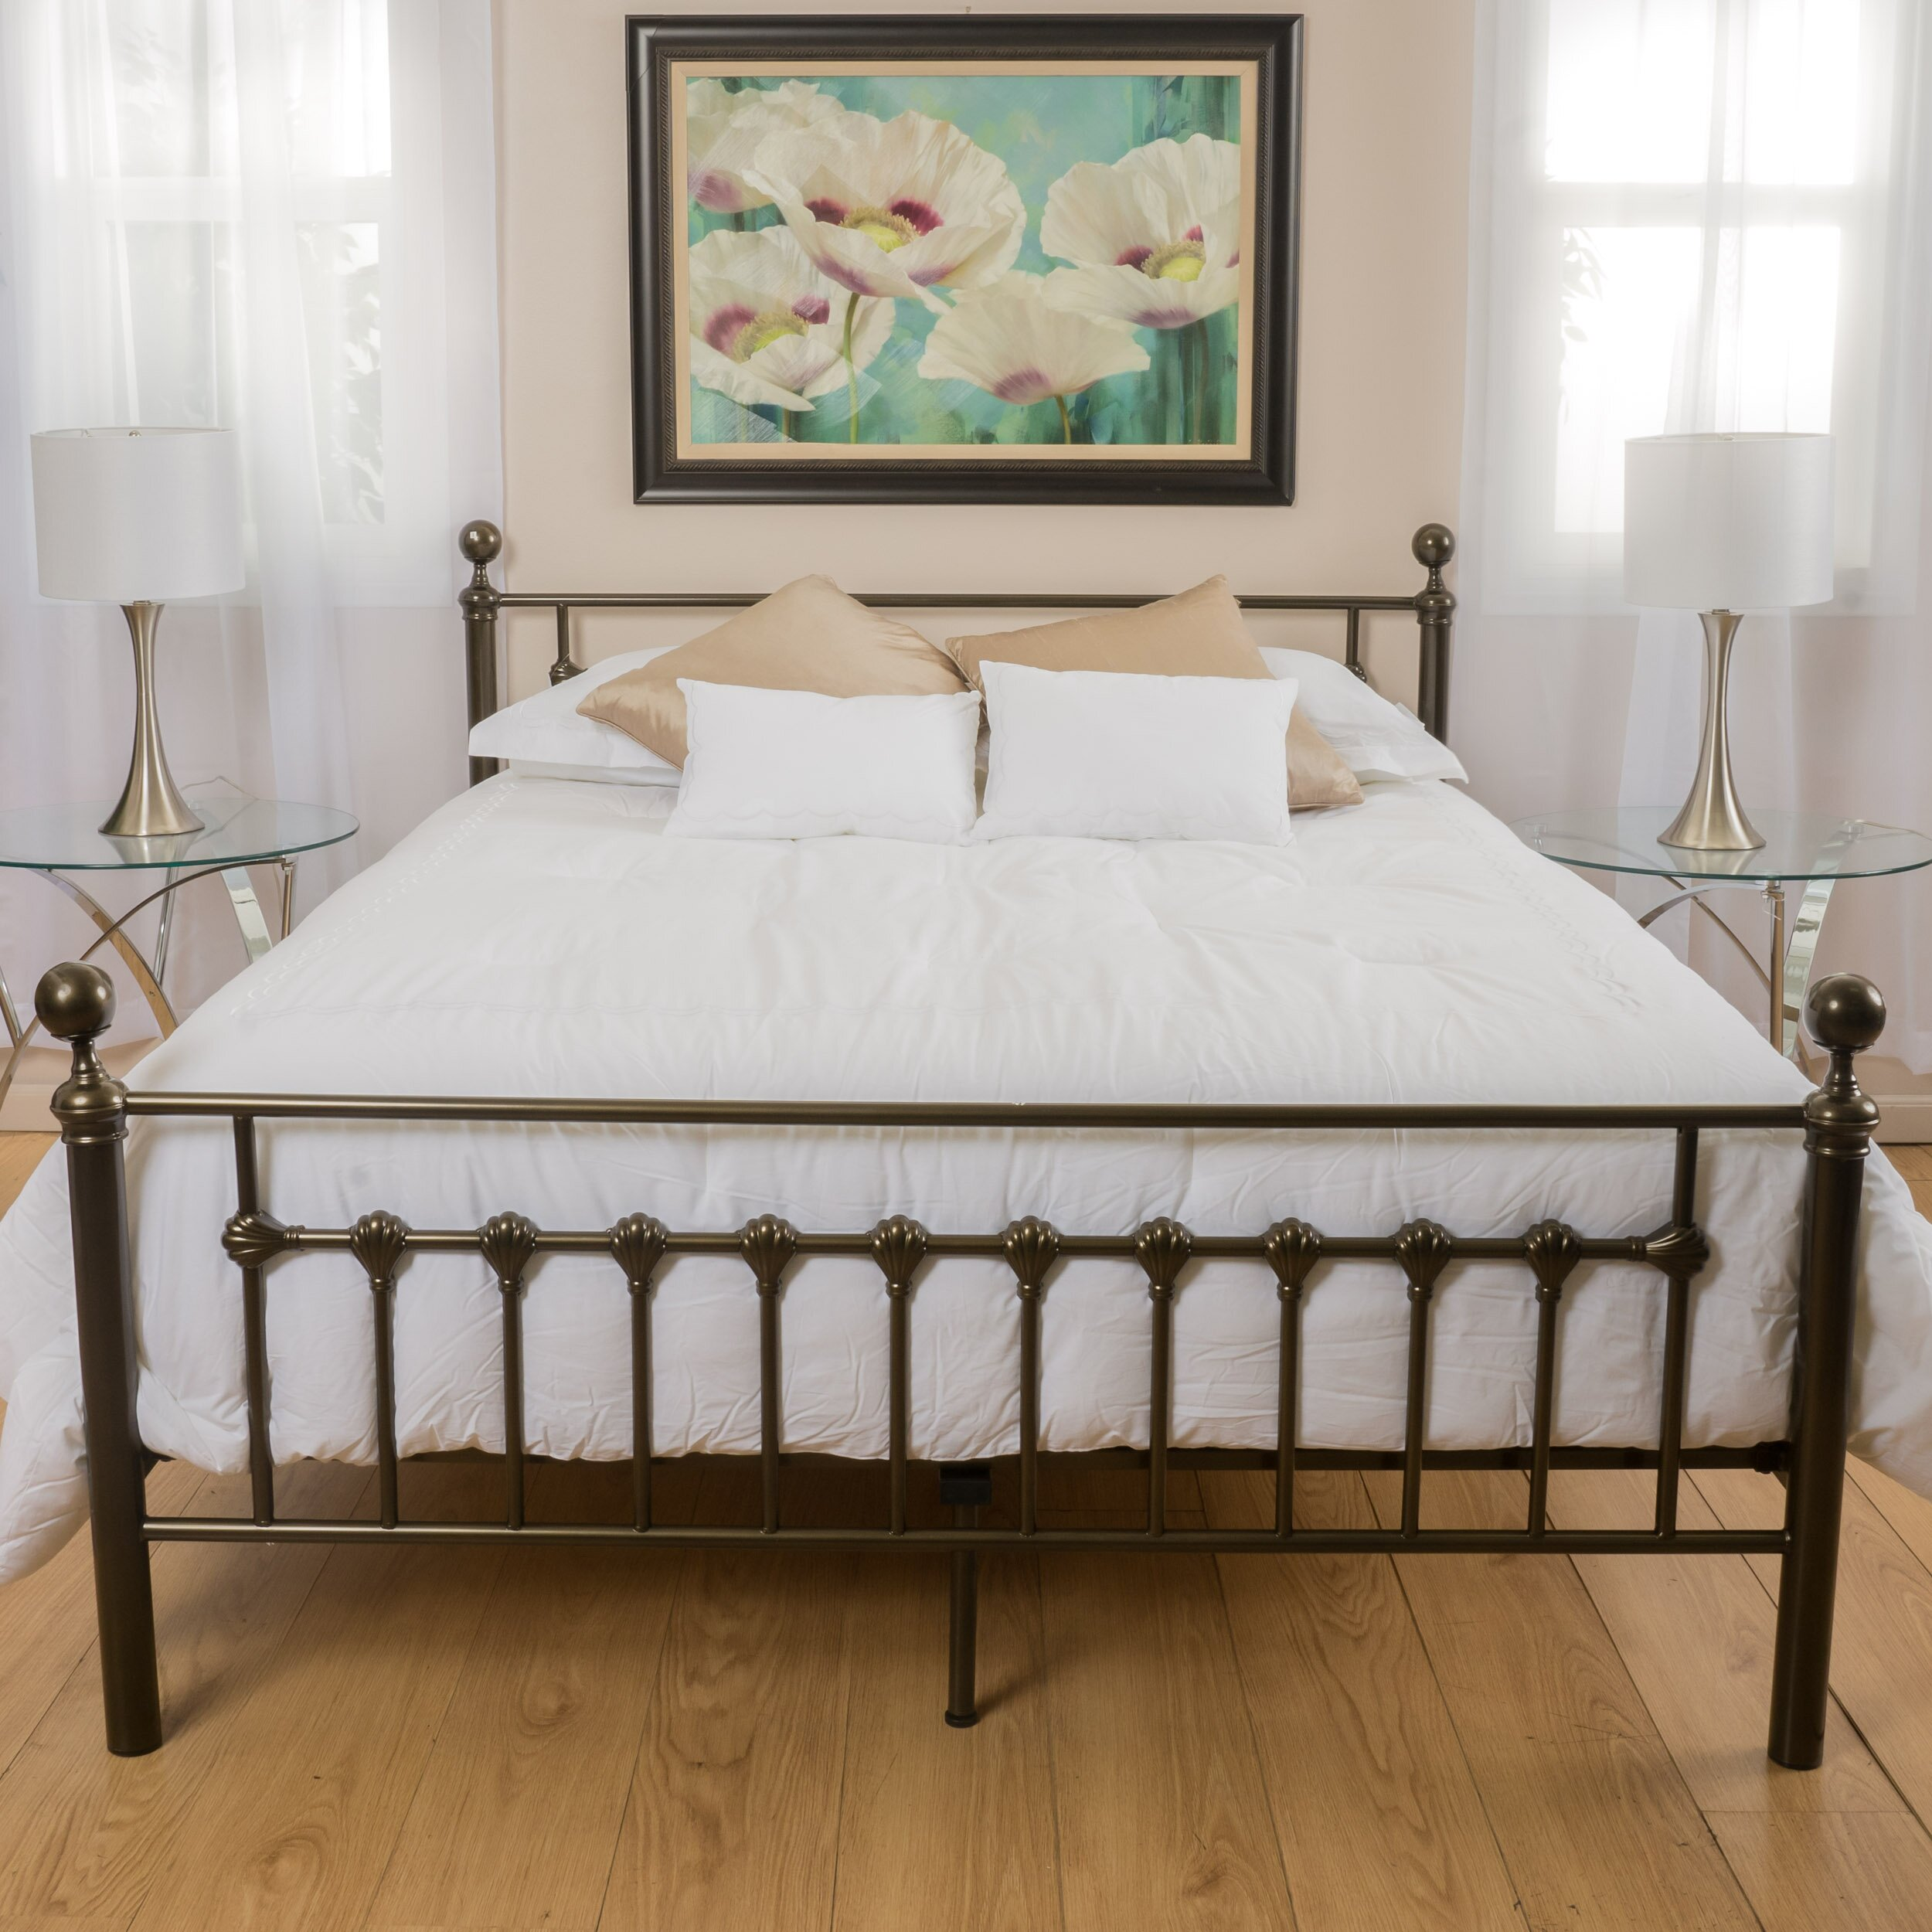 Charlton home keswick copper gold bed frame reviews for Iron bed with storage